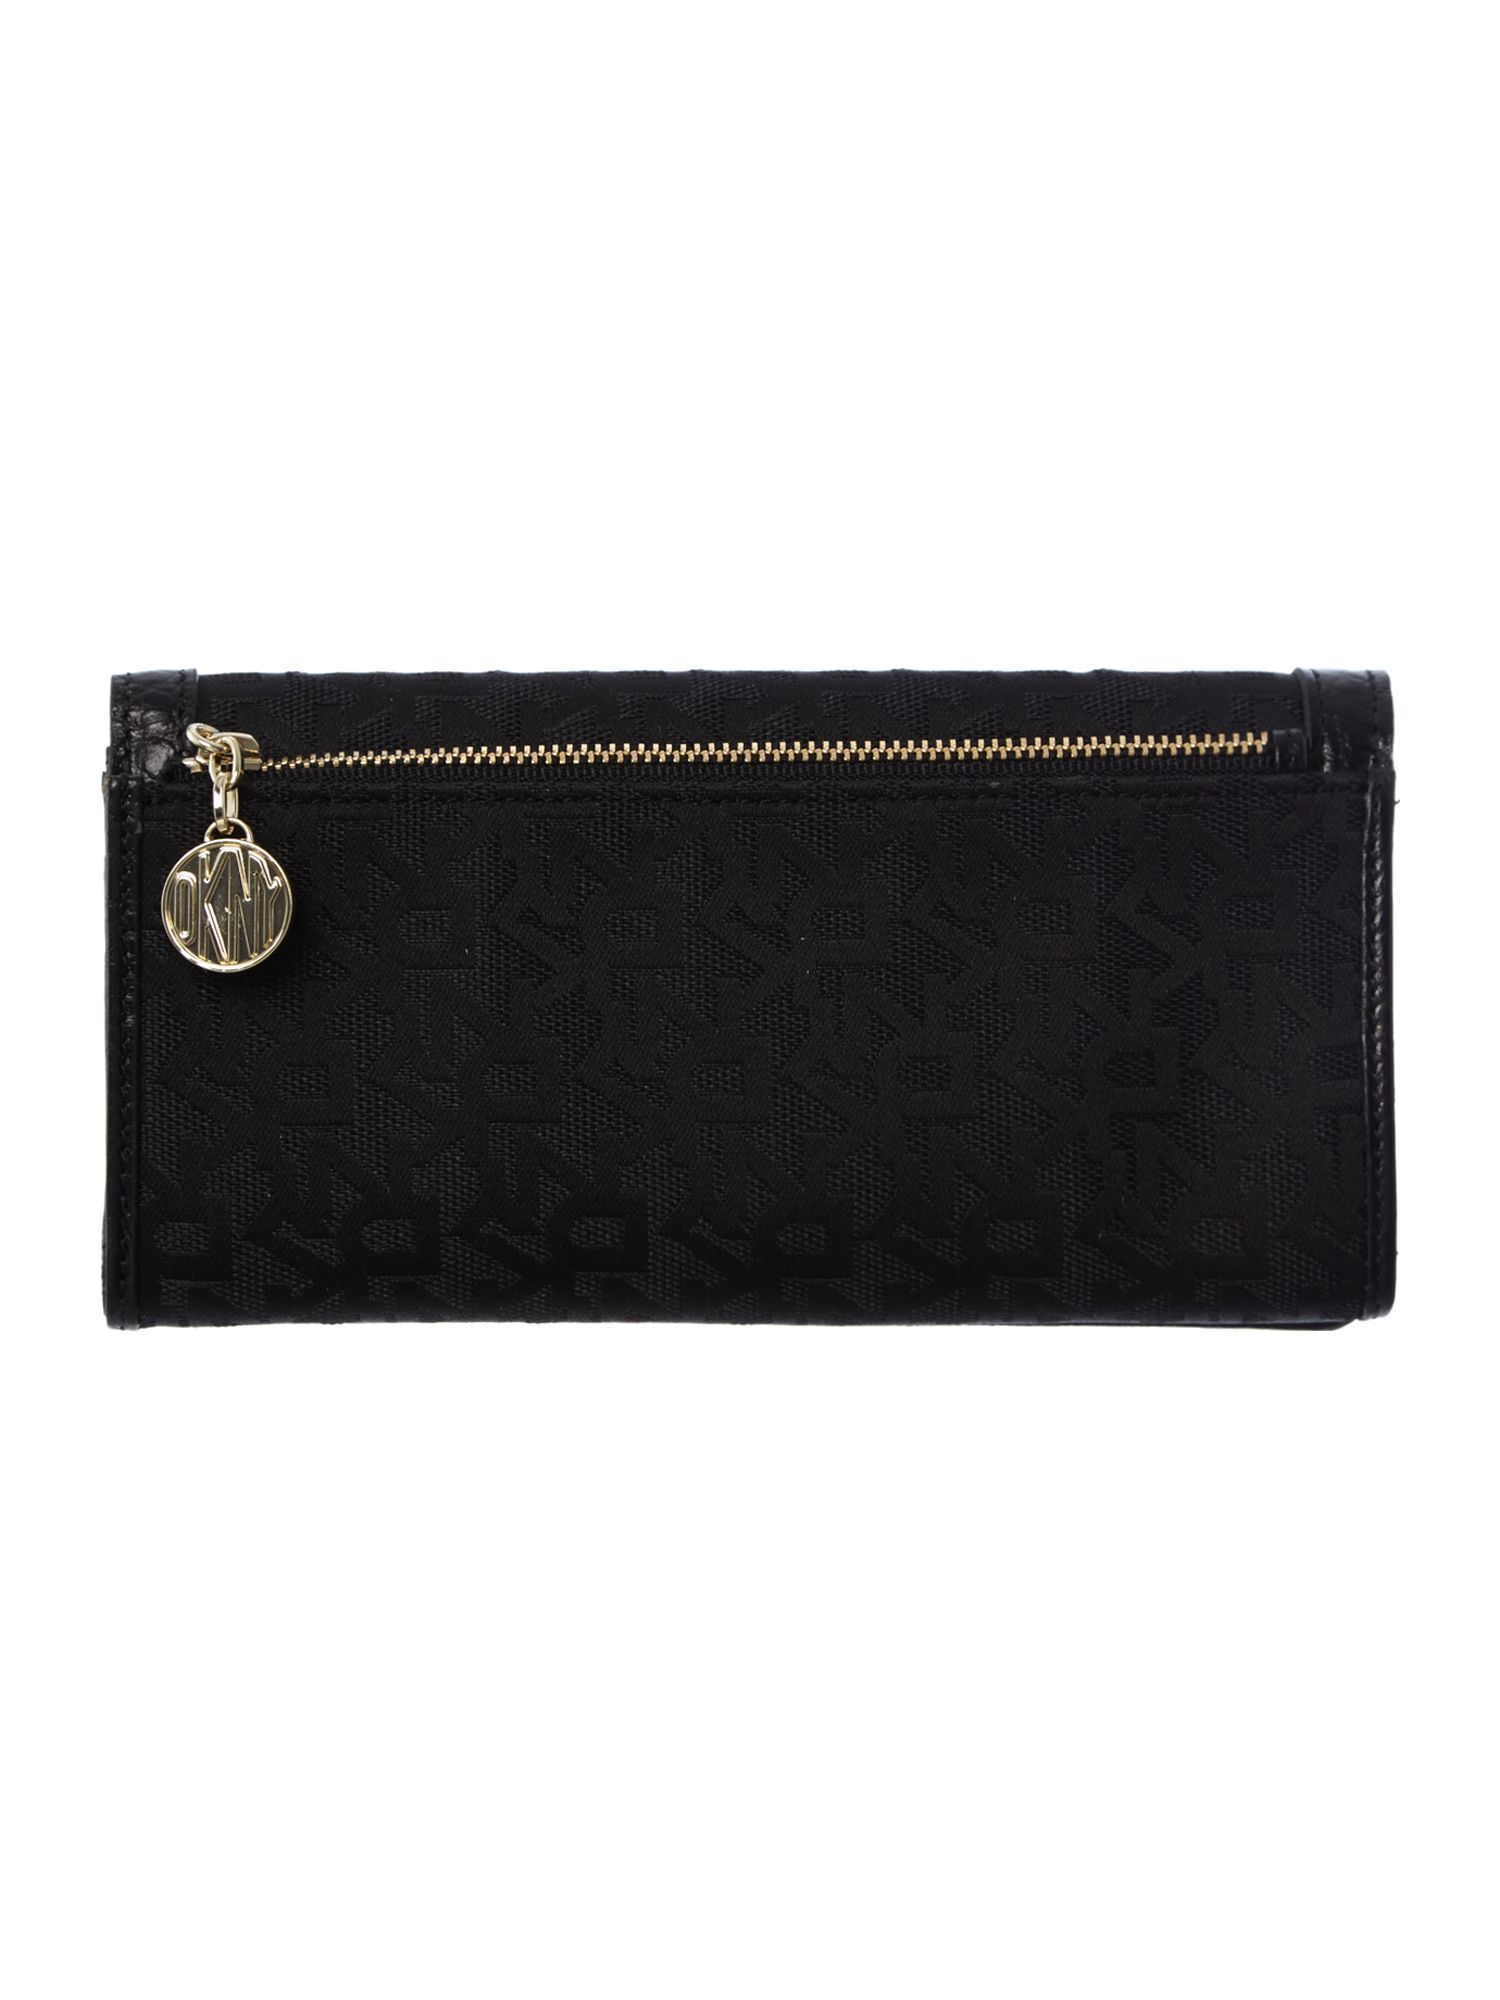 French grain black large flap over purse